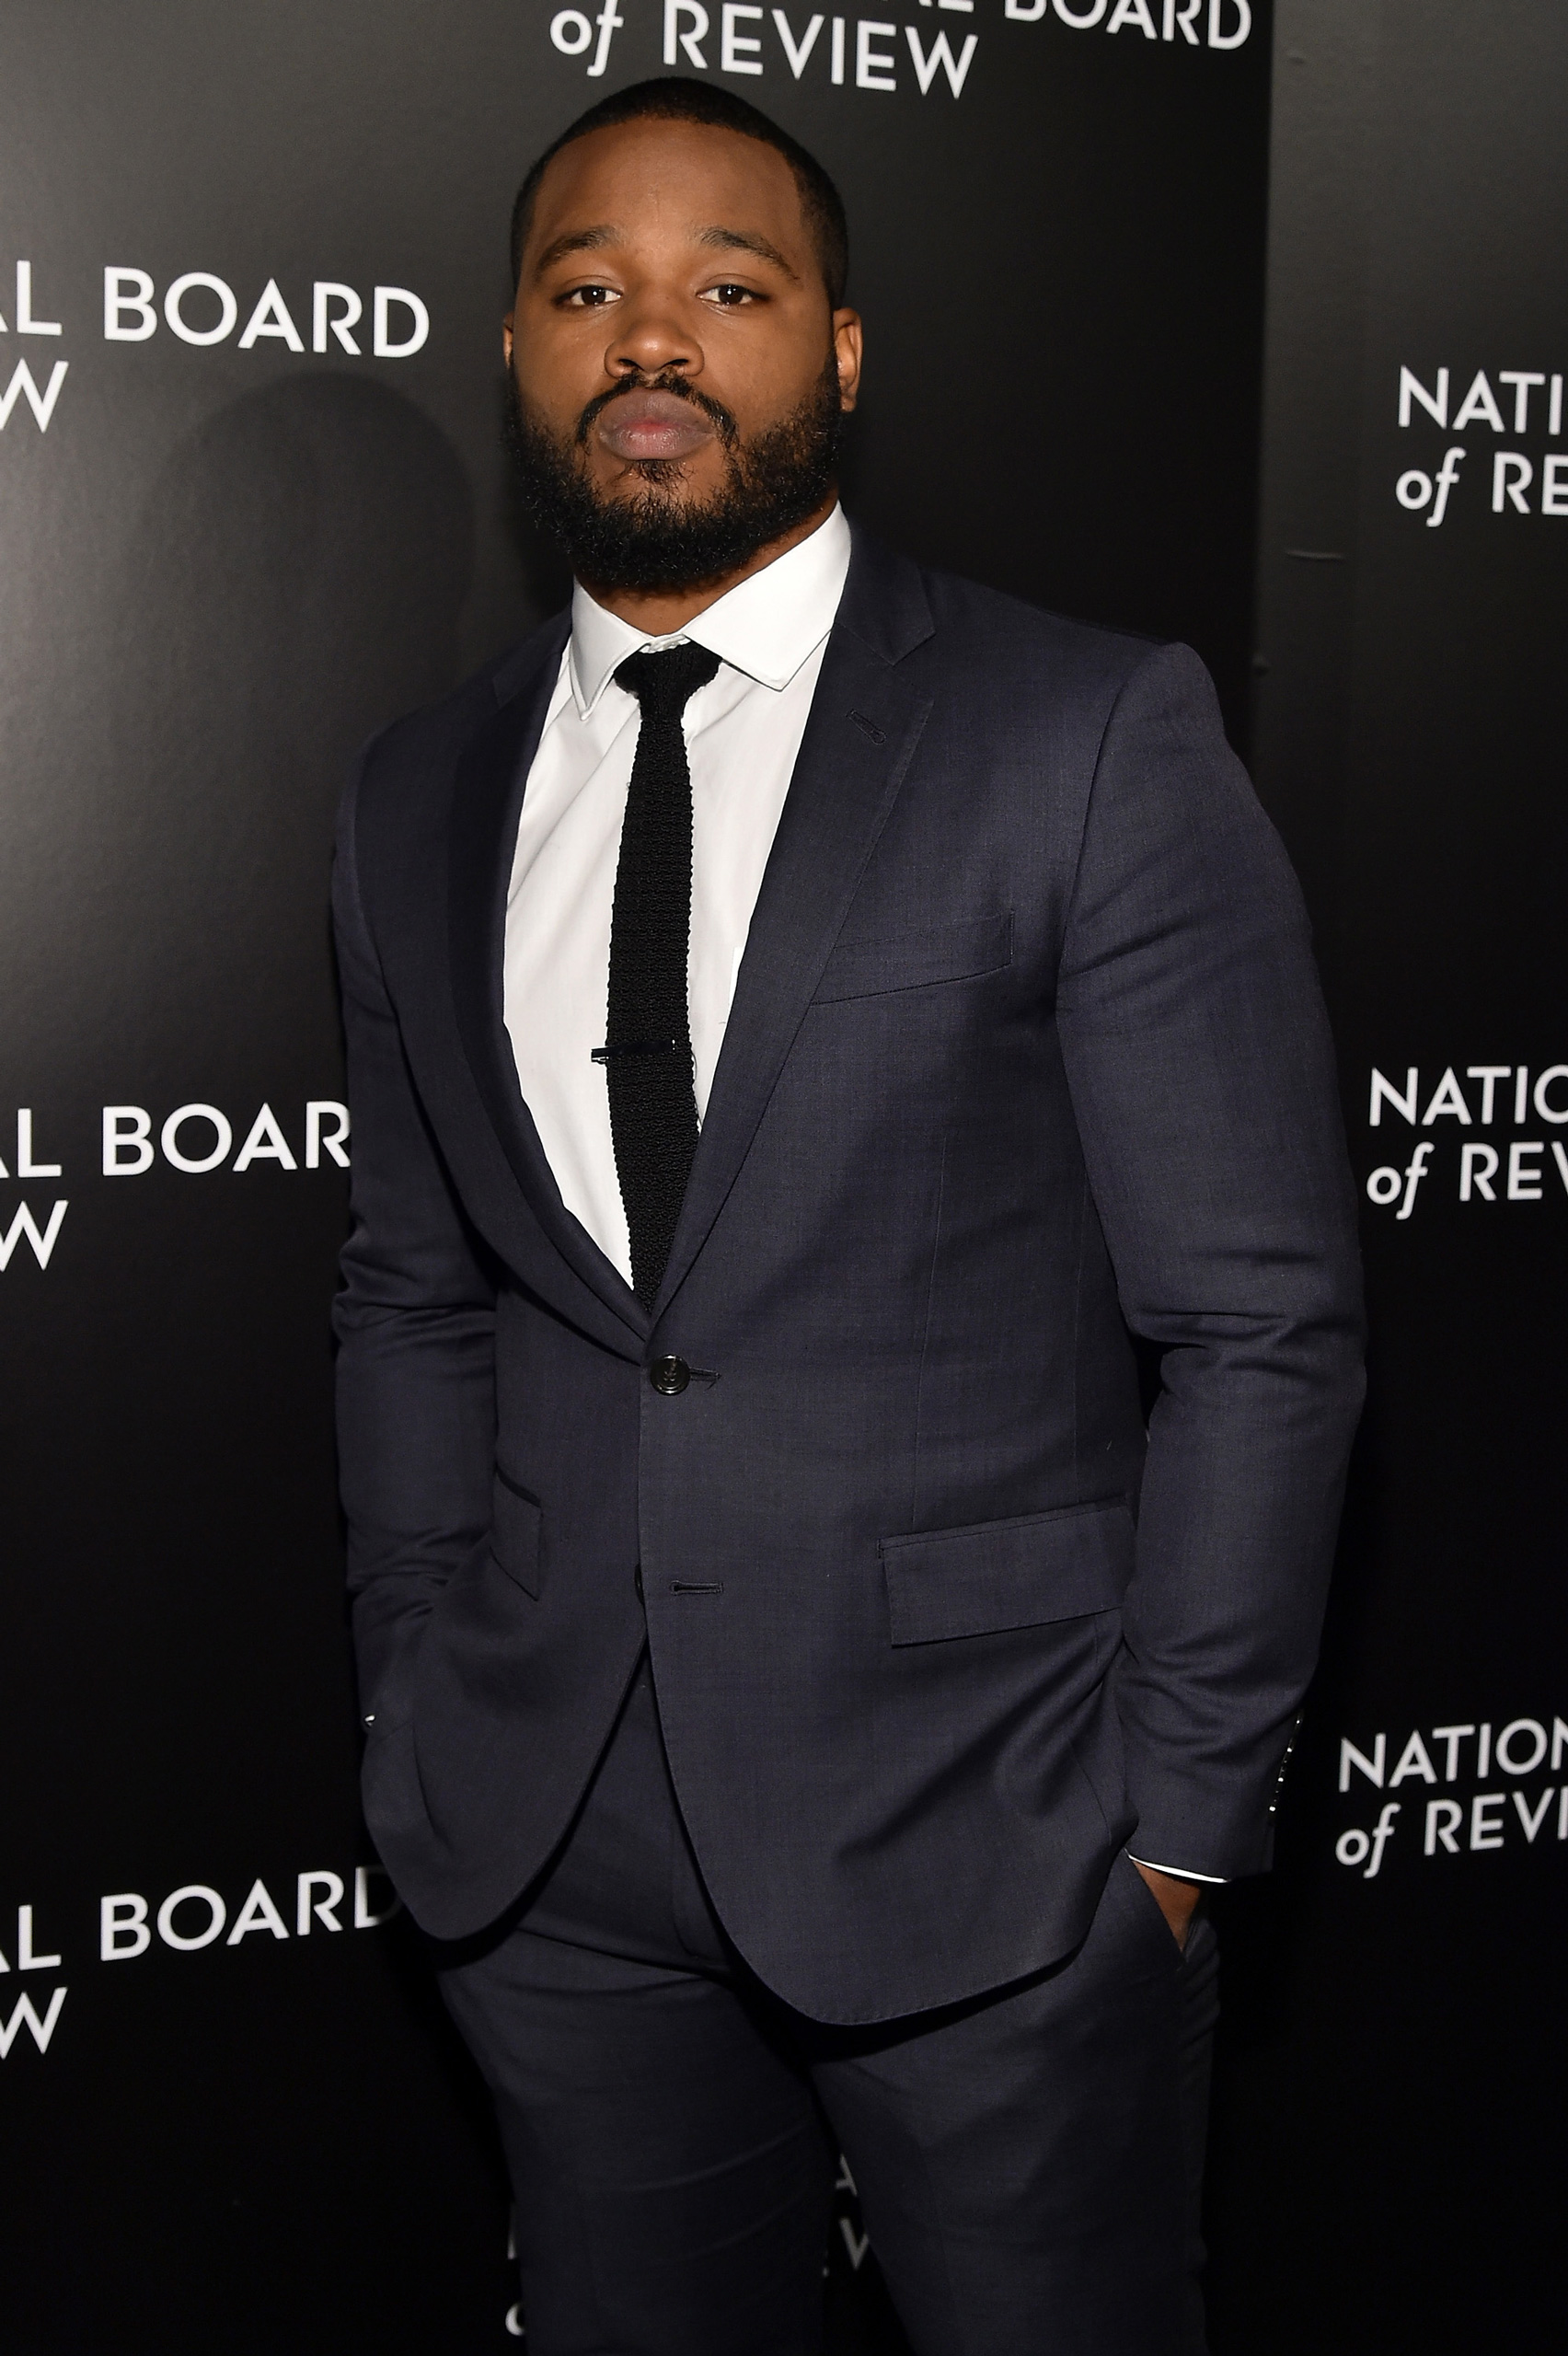 Ryan Coogler attends the 2015 National Board of Review Gala at Cipriani 42nd Street in New York City on Jan. 5, 2016.